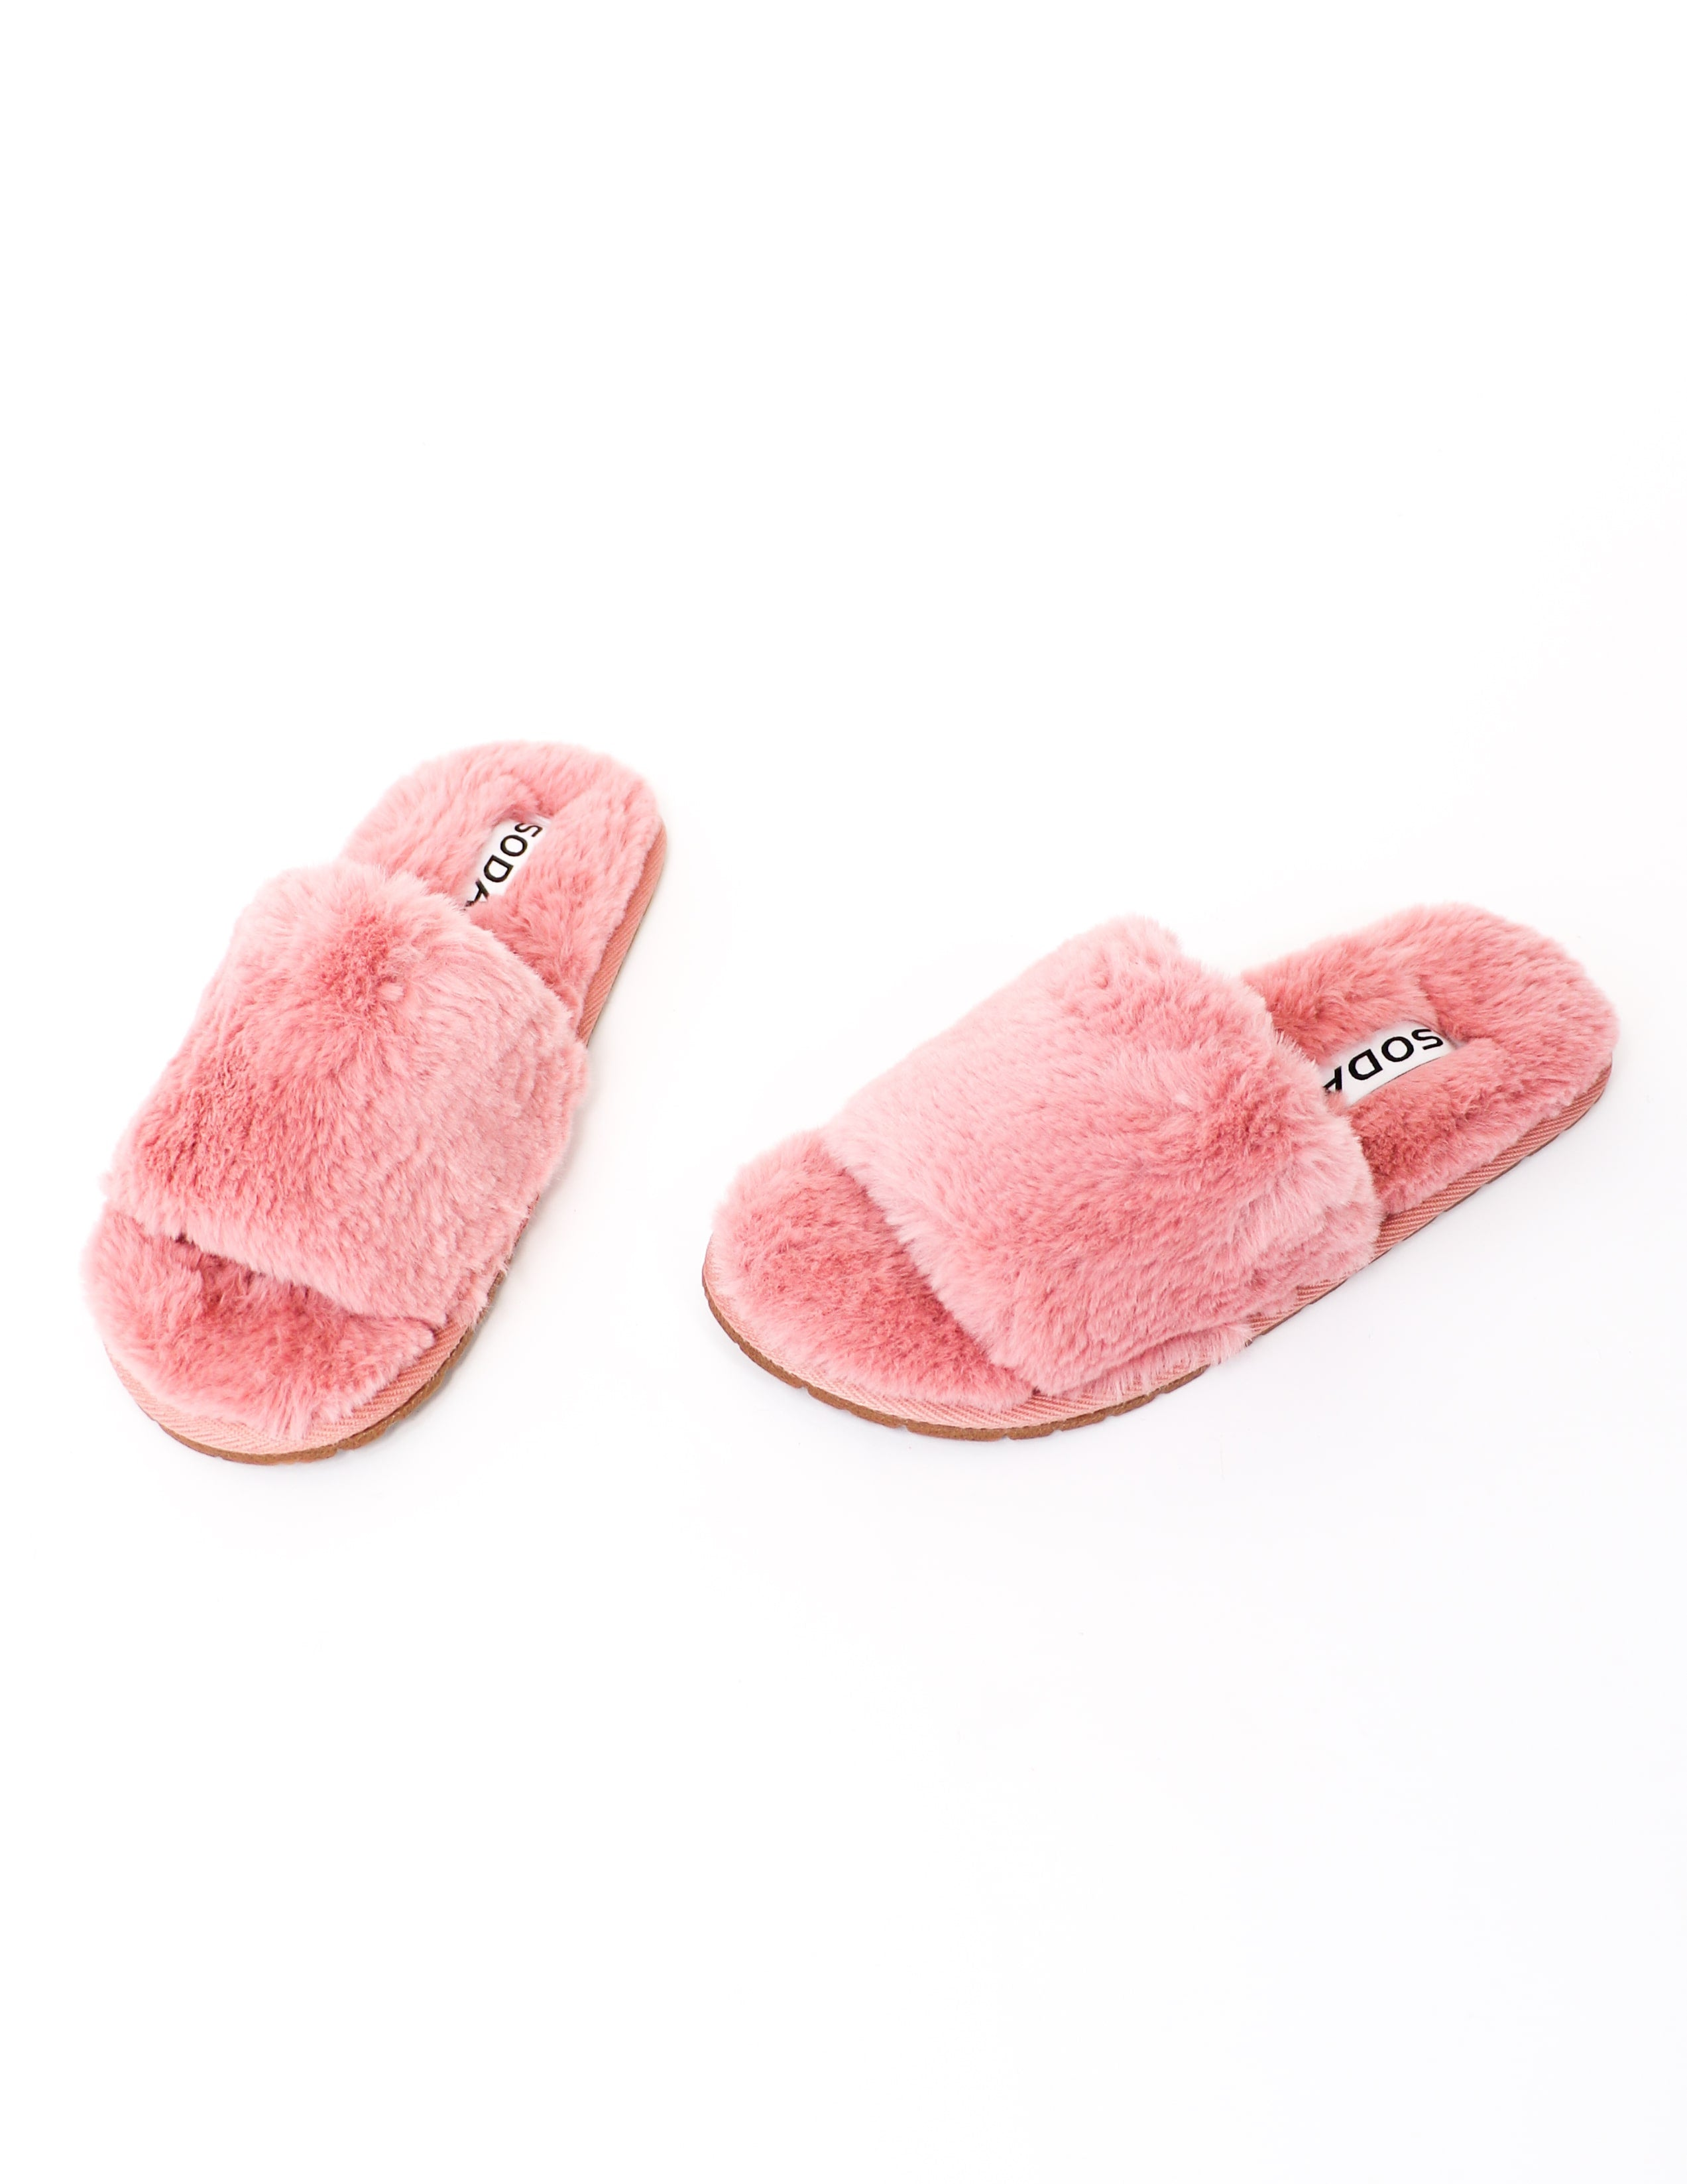 Mauve faux fur cozy for you slippers on white background - elle bleu shoes